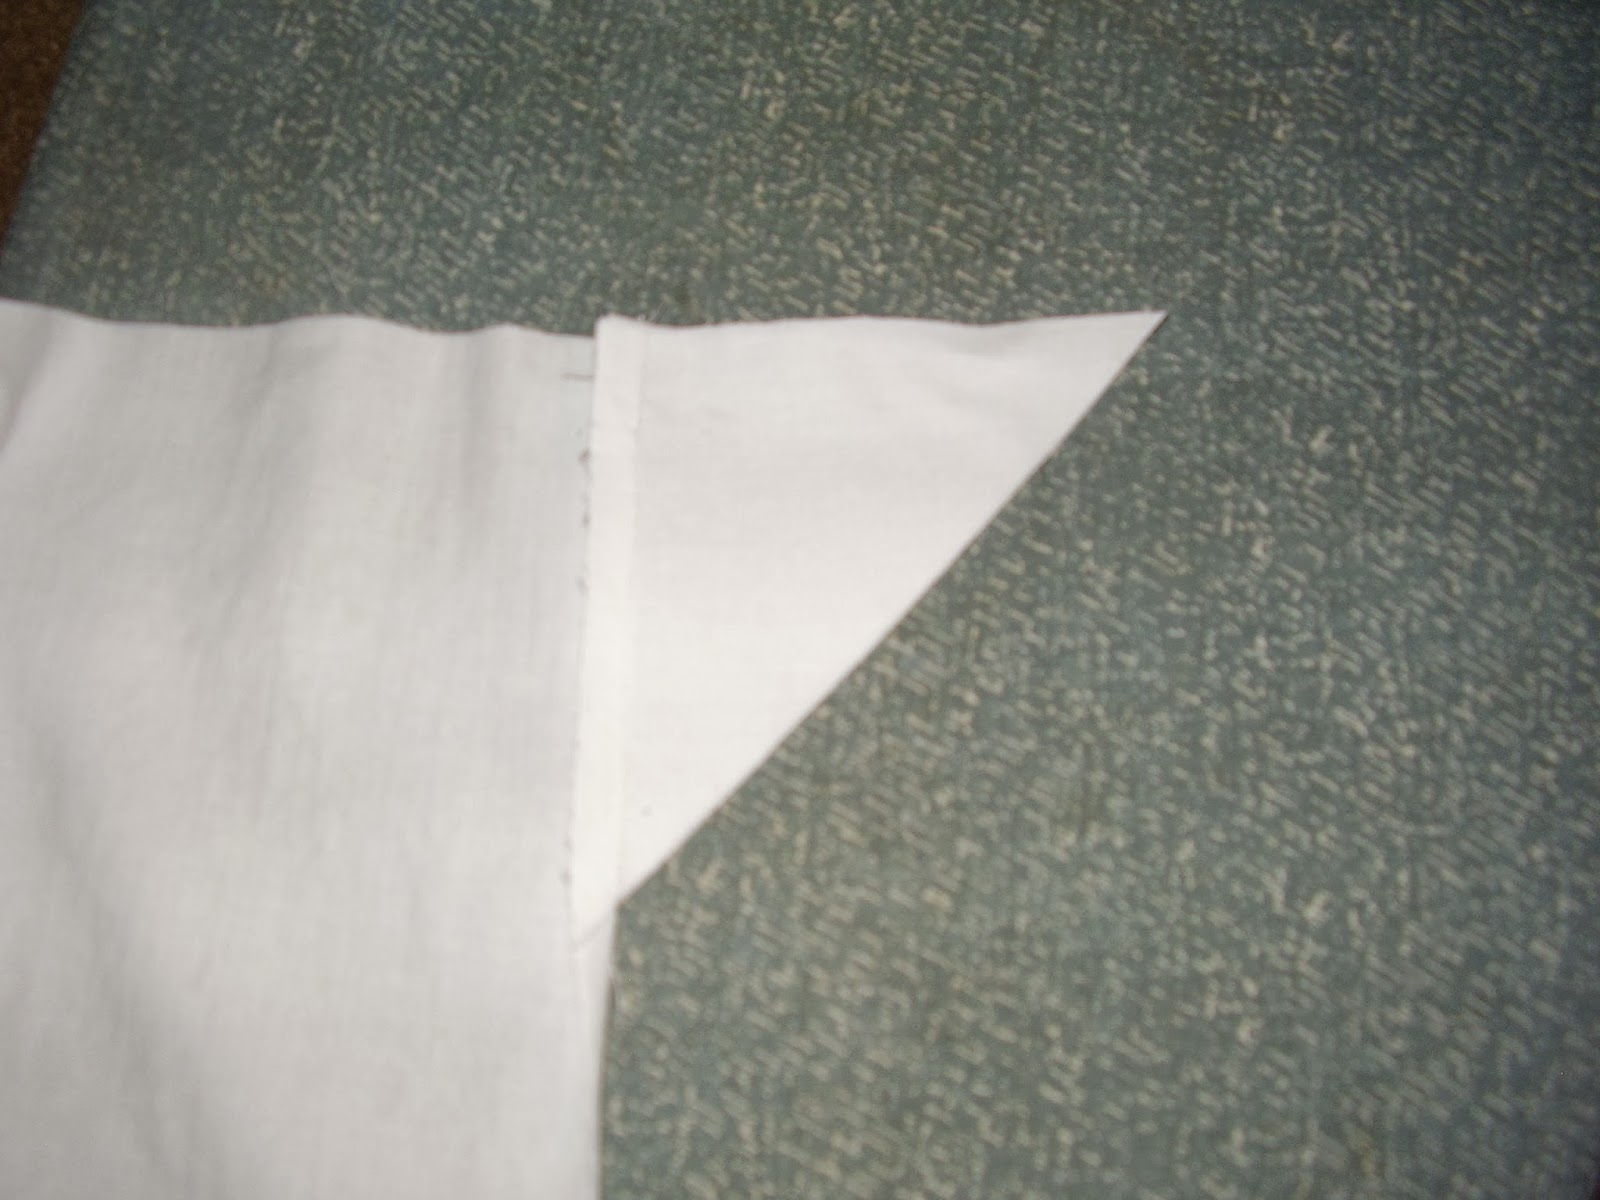 Triangular underarm gusset for Empire chemise.